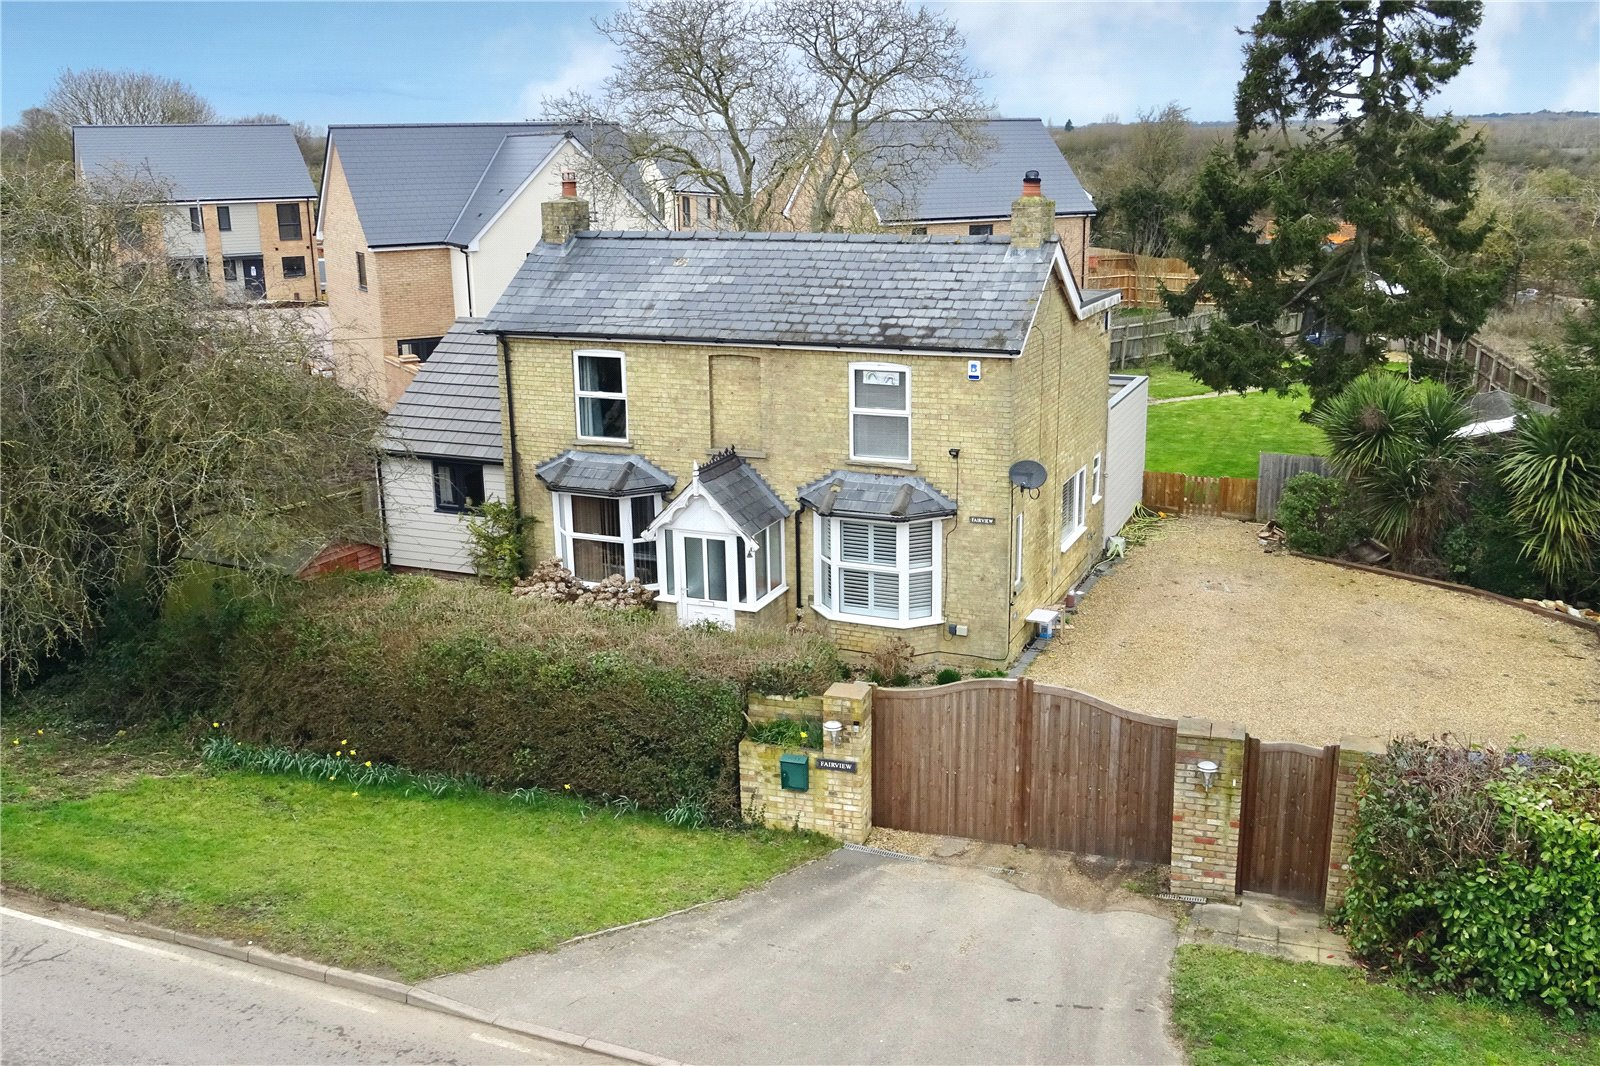 4 bed house for sale in Needingworth, PE27 4TA - Property Image 1